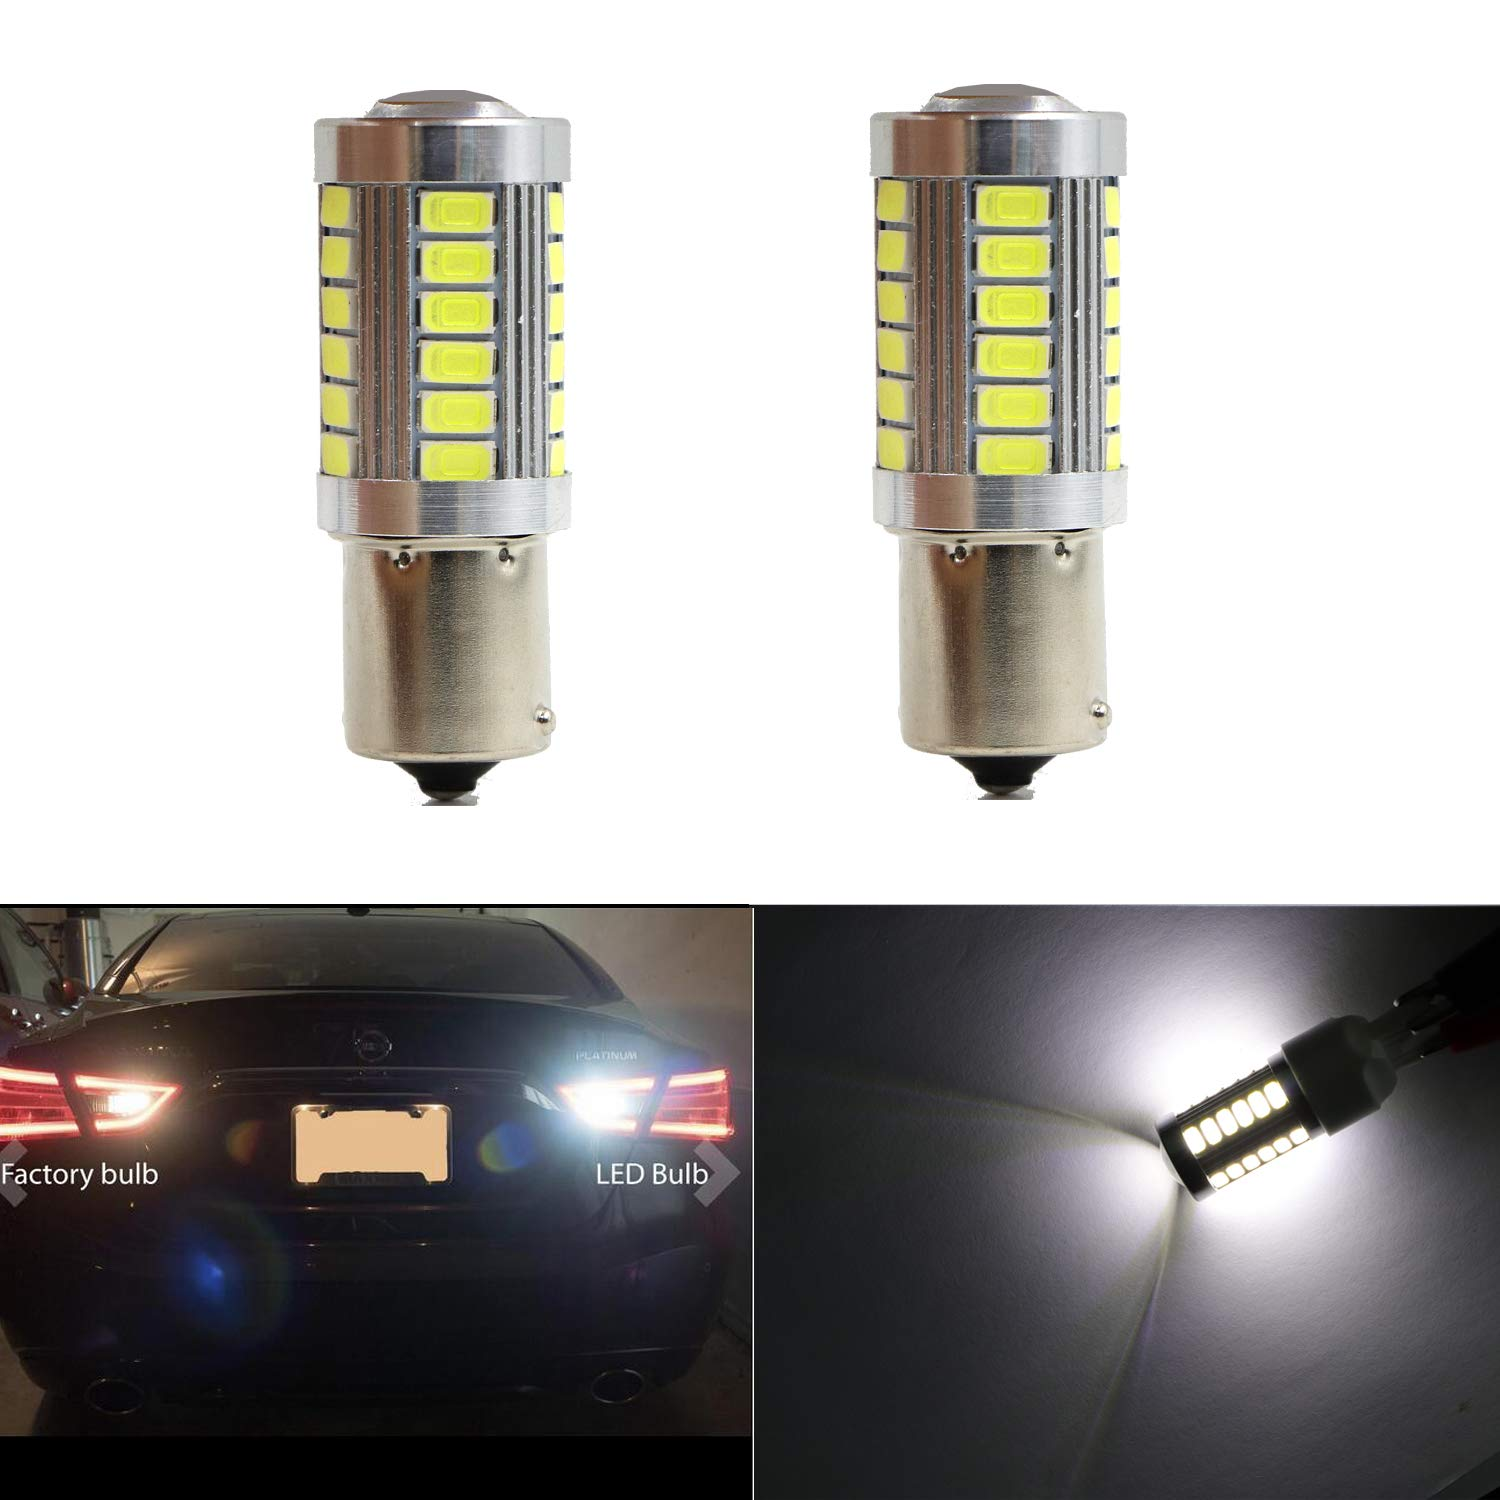 7443 7440 7441 7444 992 Reverse Light Bulbs Map Light 33pcs 5630SMD LED Brake Bulb Lights Back Up Lights (Set of 2) Henkeyi